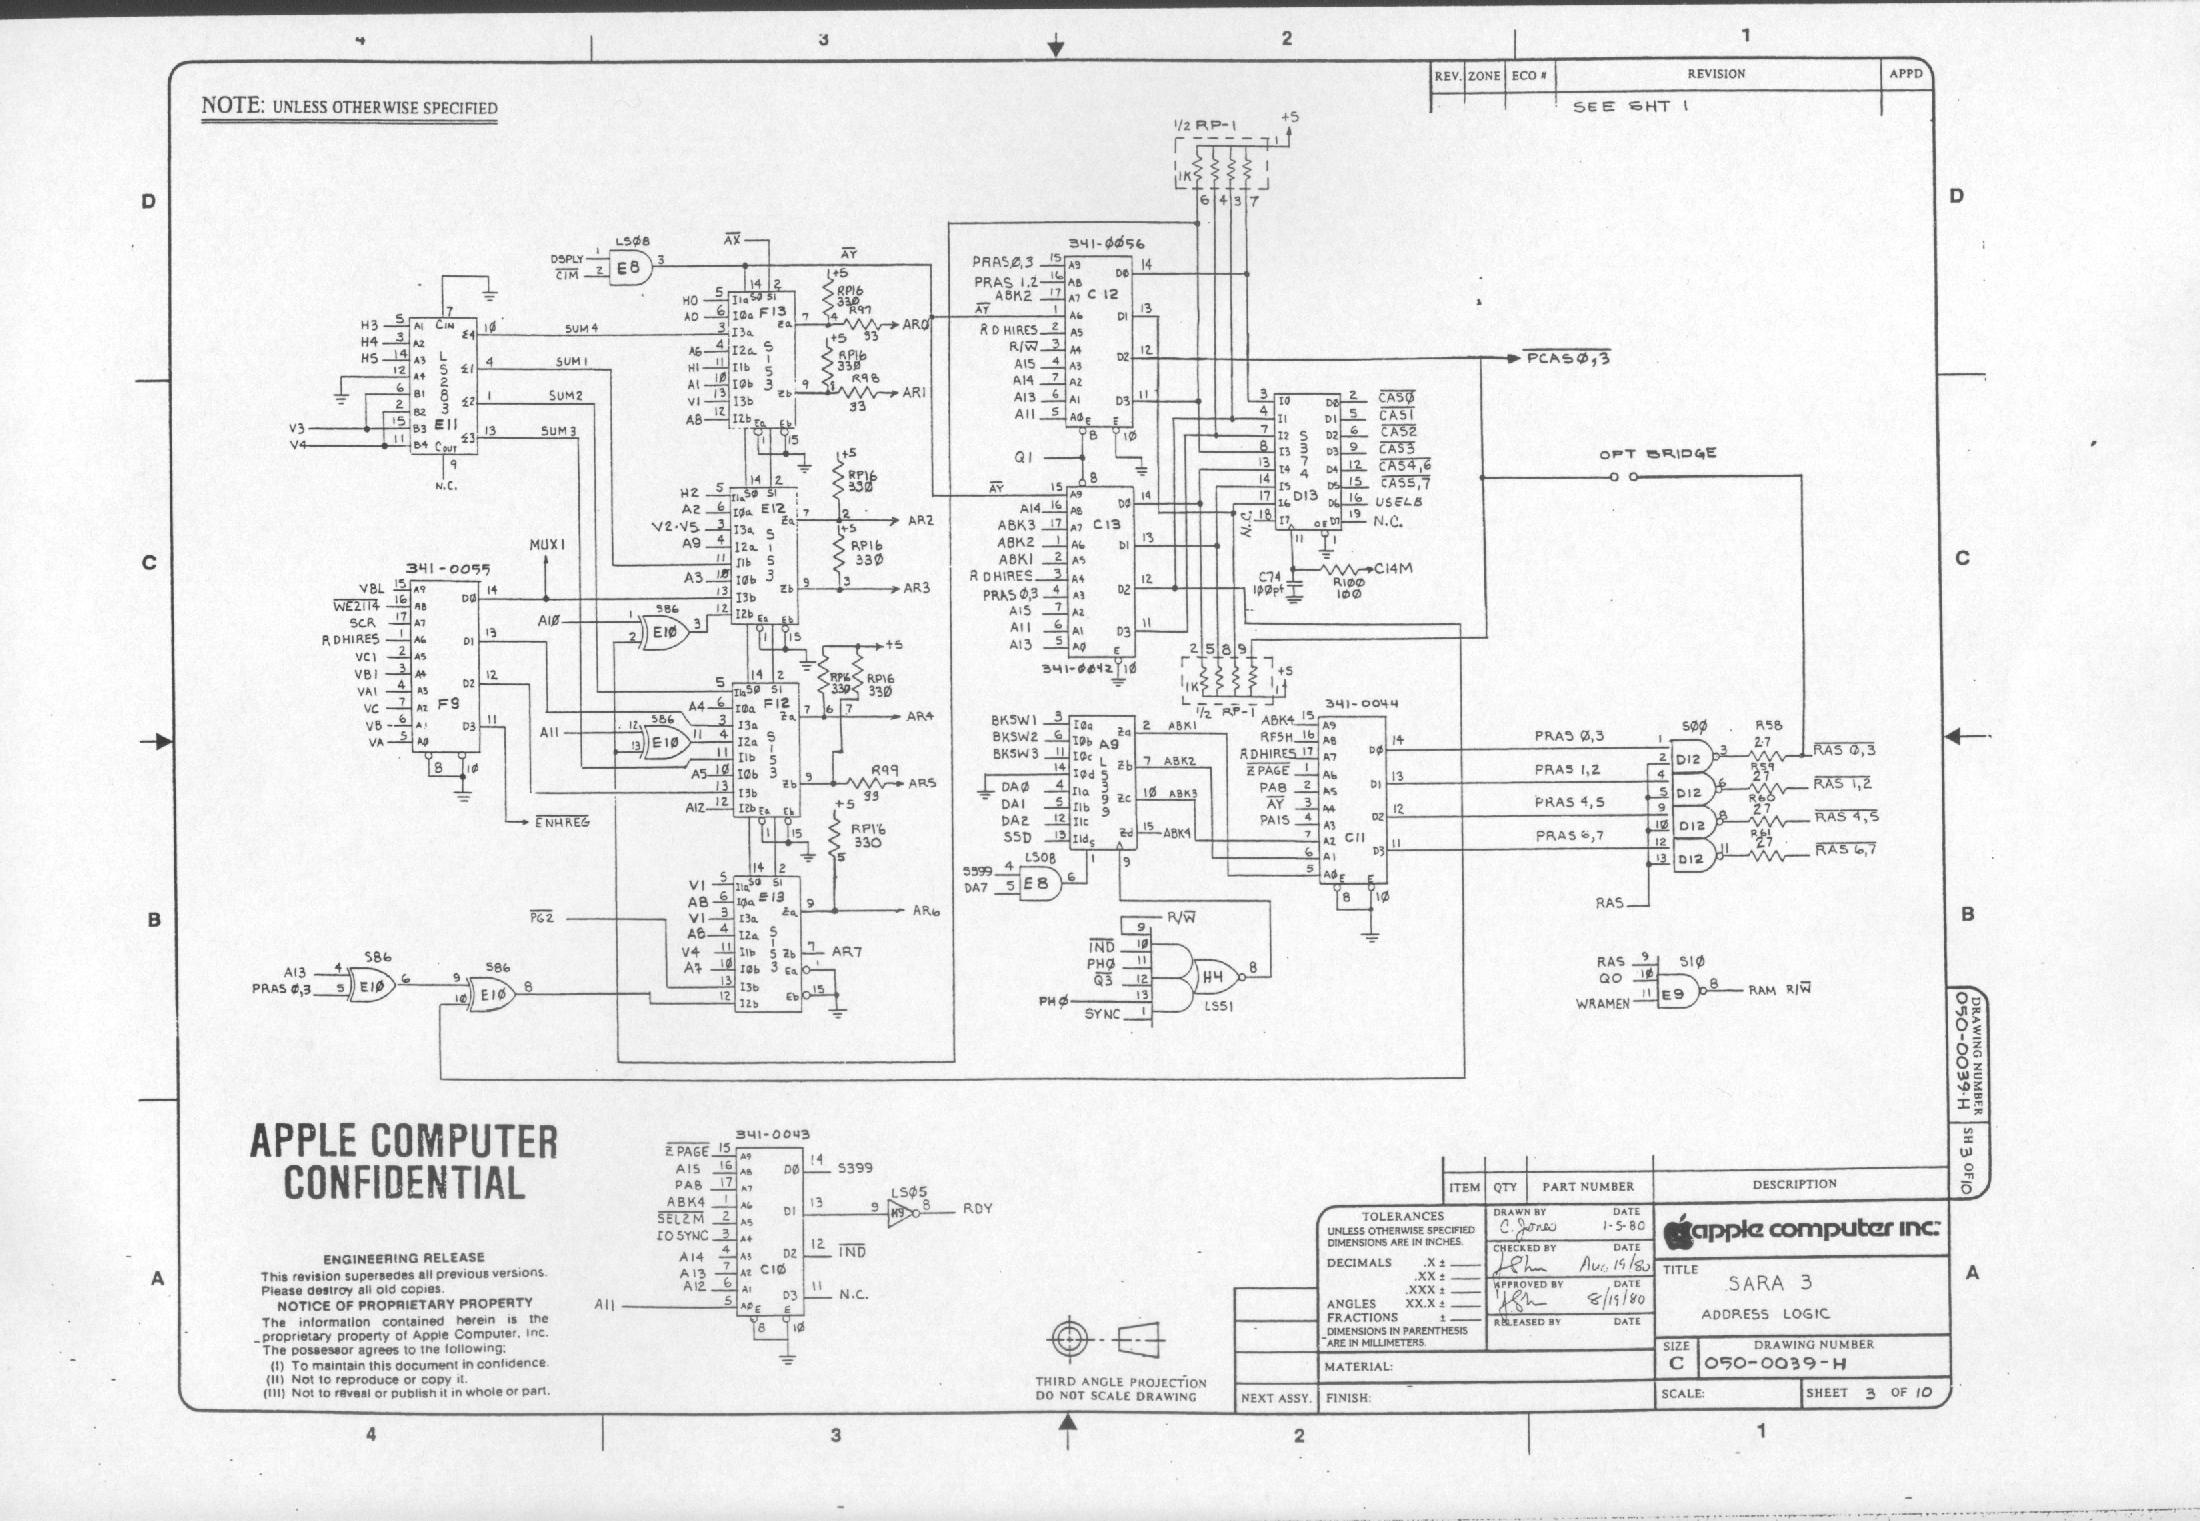 Apple III Schematic Diagrams on pictorial diagram, exploded view diagram, circuit diagram, problem solving diagram, diagramming software, network diagram, yed graph diagram, isometric diagram, function block diagram, line diagram, schema diagram, system diagram, data flow diagram, tube map, straight-line diagram, ladder logic, carm diagram, cutaway diagram, electric current diagram, technical drawing, electronic design automation, schematic editor, piping and instrumentation diagram, wiring diagram, block diagram, one-line diagram, flow diagram, control flow diagram, sequence diagram, process diagram, critical mass diagram, cross section, functional flow block diagram, concept diagram,